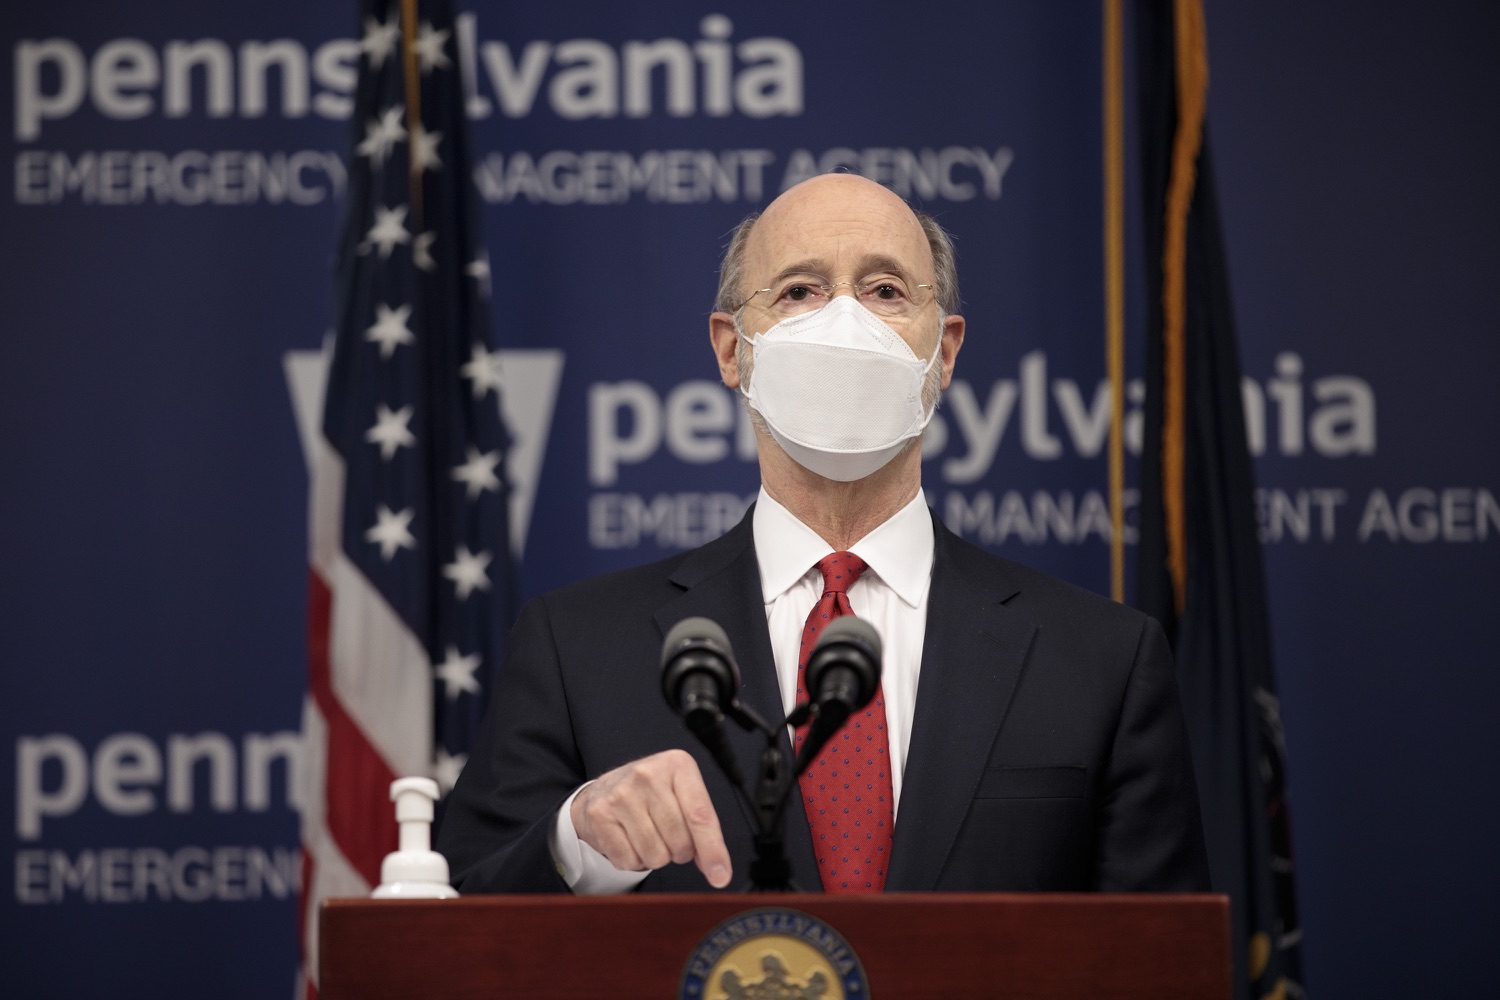 "<a href=""https://filesource.wostreaming.net/commonwealthofpa/photo/18540_gov_backtowork_dz_03.jpg"" target=""_blank"">⇣ Download Photo<br></a>Pennsylvania Governor Tom Wolf speaking at the press conference. The COVID-19 global pandemic has significantly affected Pennsylvania workers, businesses and communities. To bolster economic recovery efforts and position Pennsylvania for economic growth, Governor Tom Wolf today unveiled his Back to Work PA plan.   Harrisburg, PA  February 22, 2021"